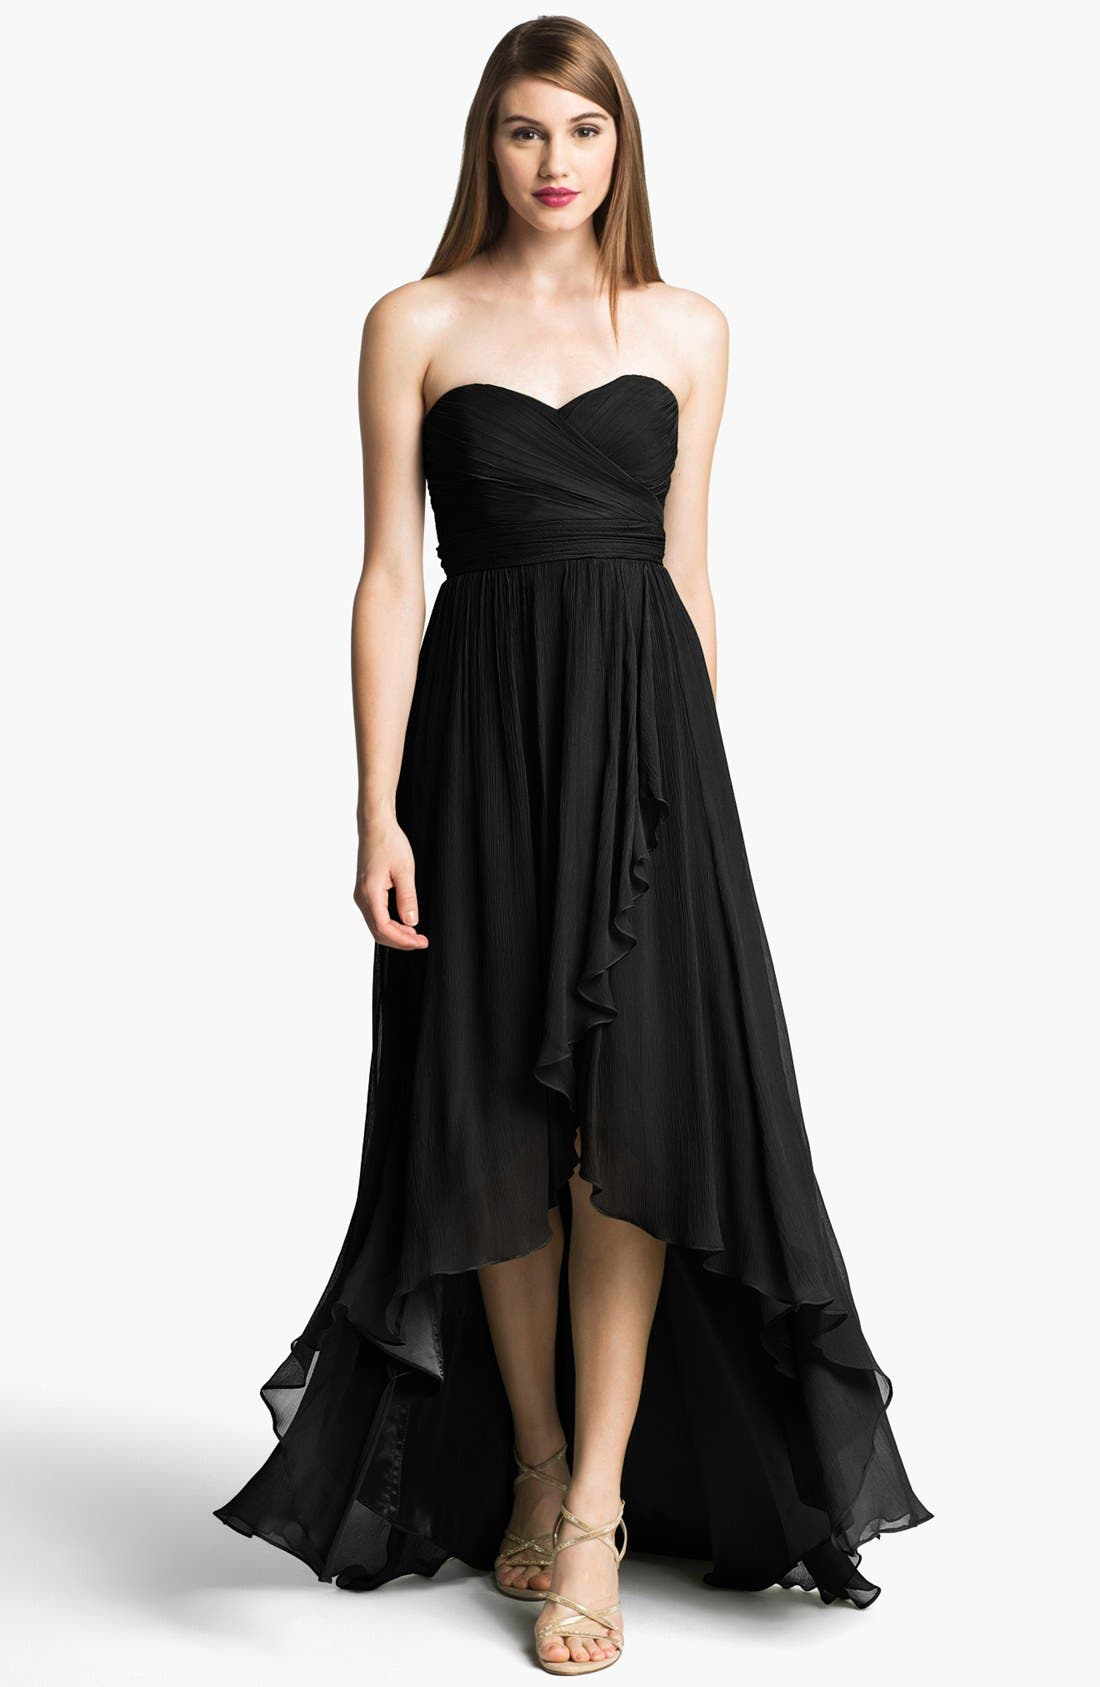 Alternate Image 1 Selected - Jenny Yoo 'Shiloh' Strapless High/Low Silk Chiffon Gown (Online Only)